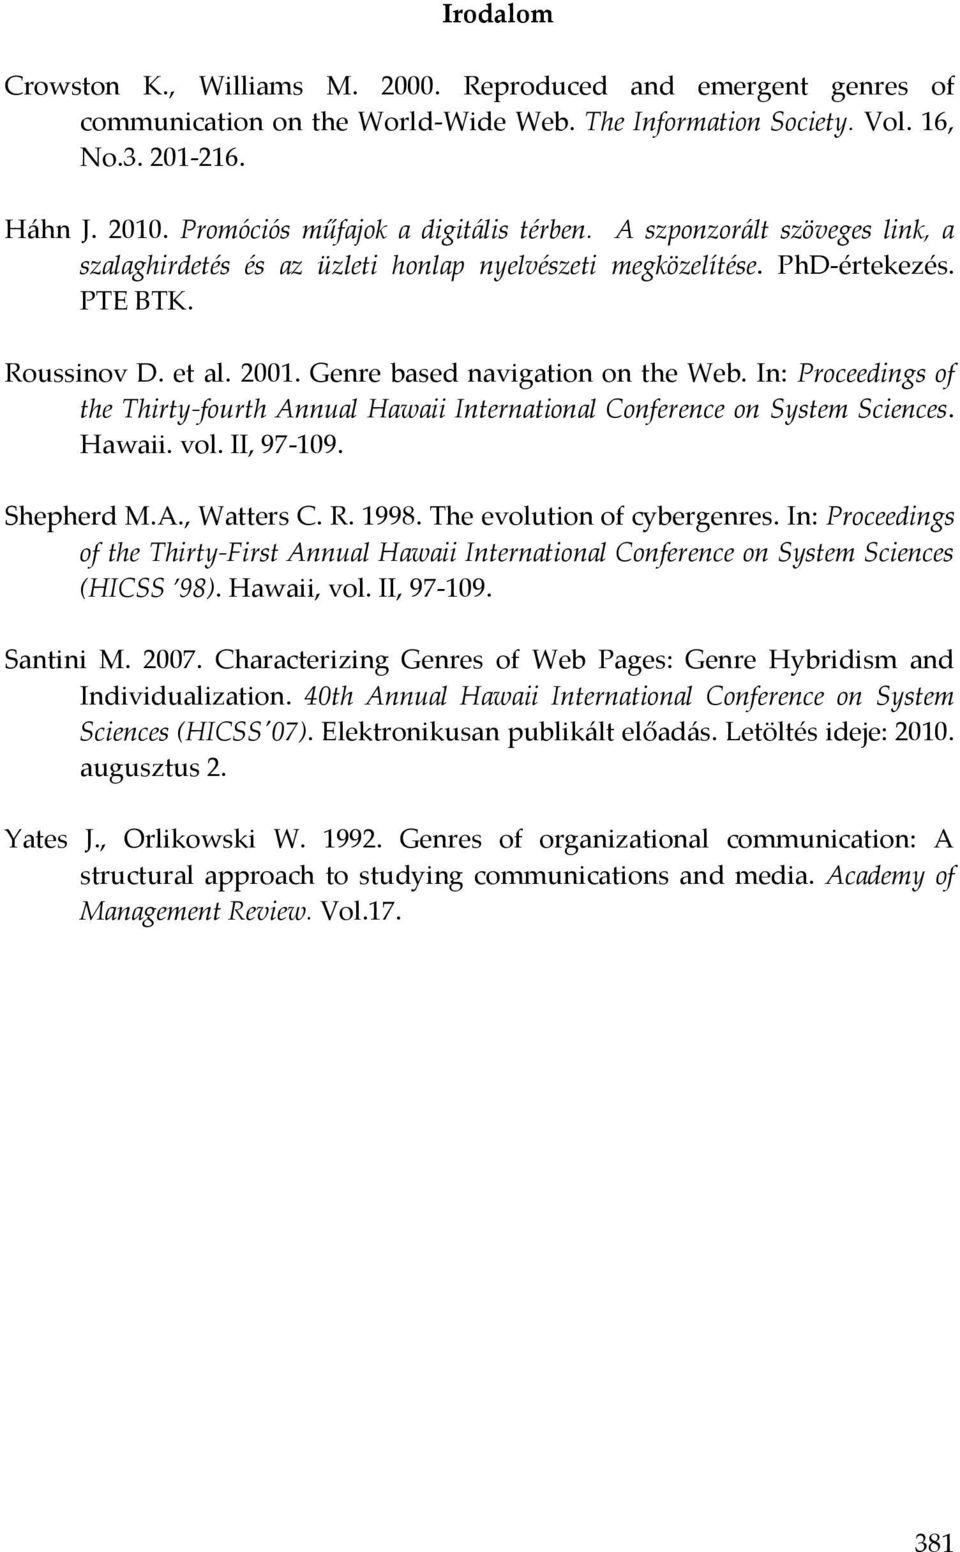 Genre based navigation on the Web. In: Proceedings of the Thirty-fourth Annual Hawaii International Conference on System Sciences. Hawaii. vol. II, 97-109. Shepherd M.A., Watters C. R. 1998.